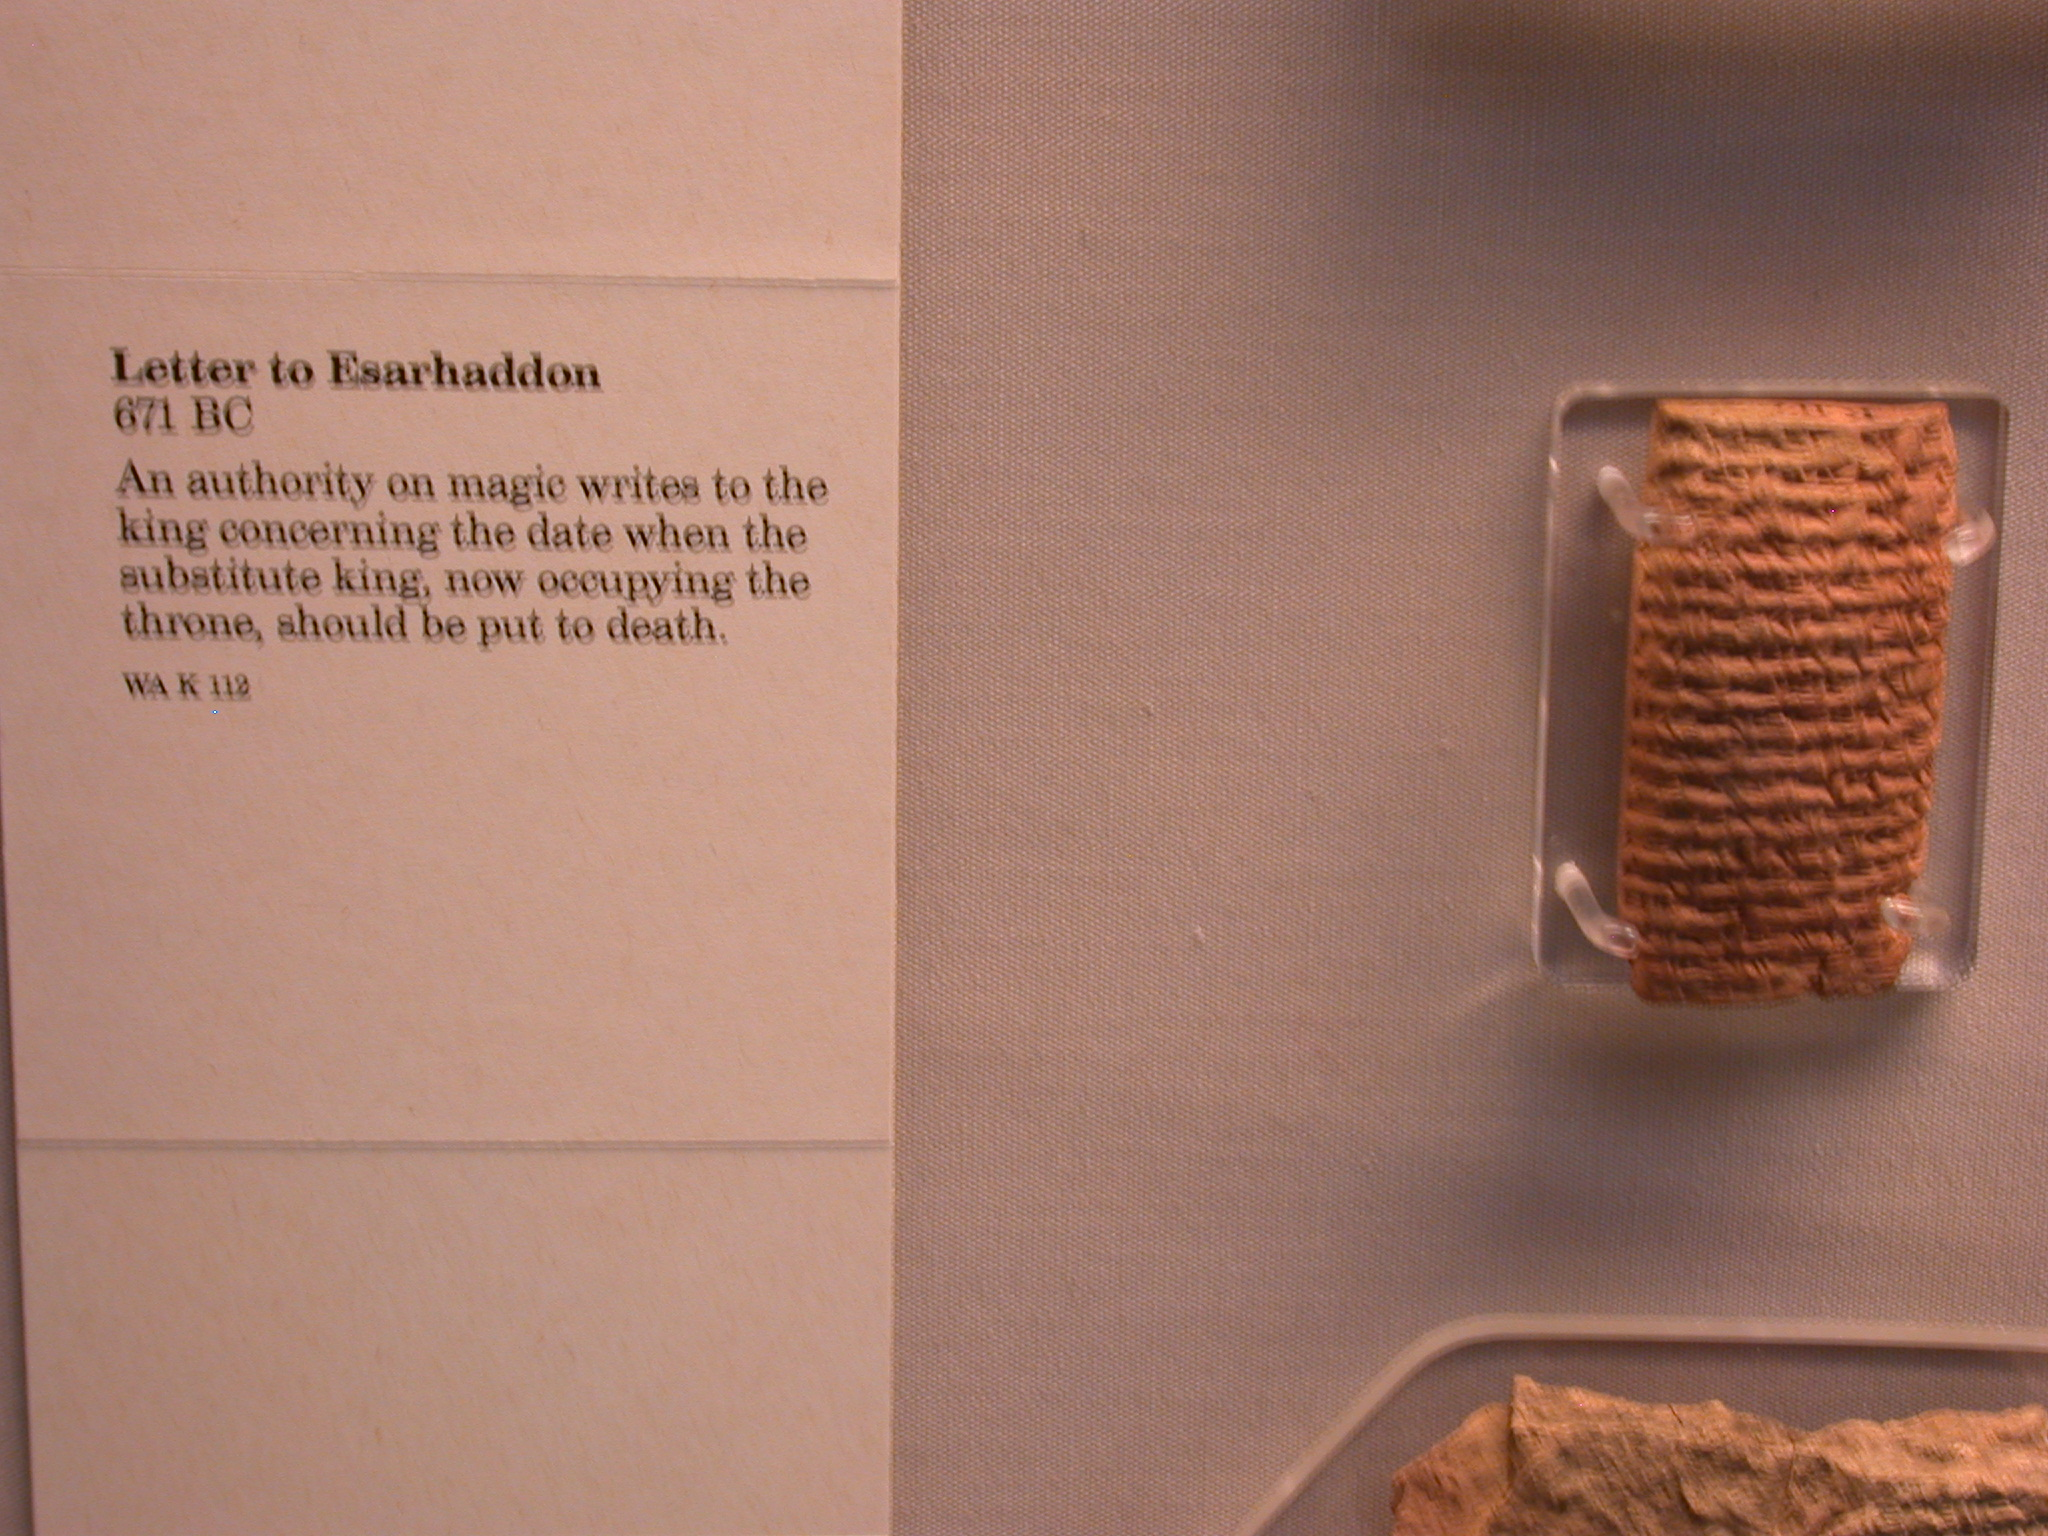 Letter to Esarhaddon From Magician About Death Date for Substitute King, 671 BCE, Assyria, in British Museum, London, England